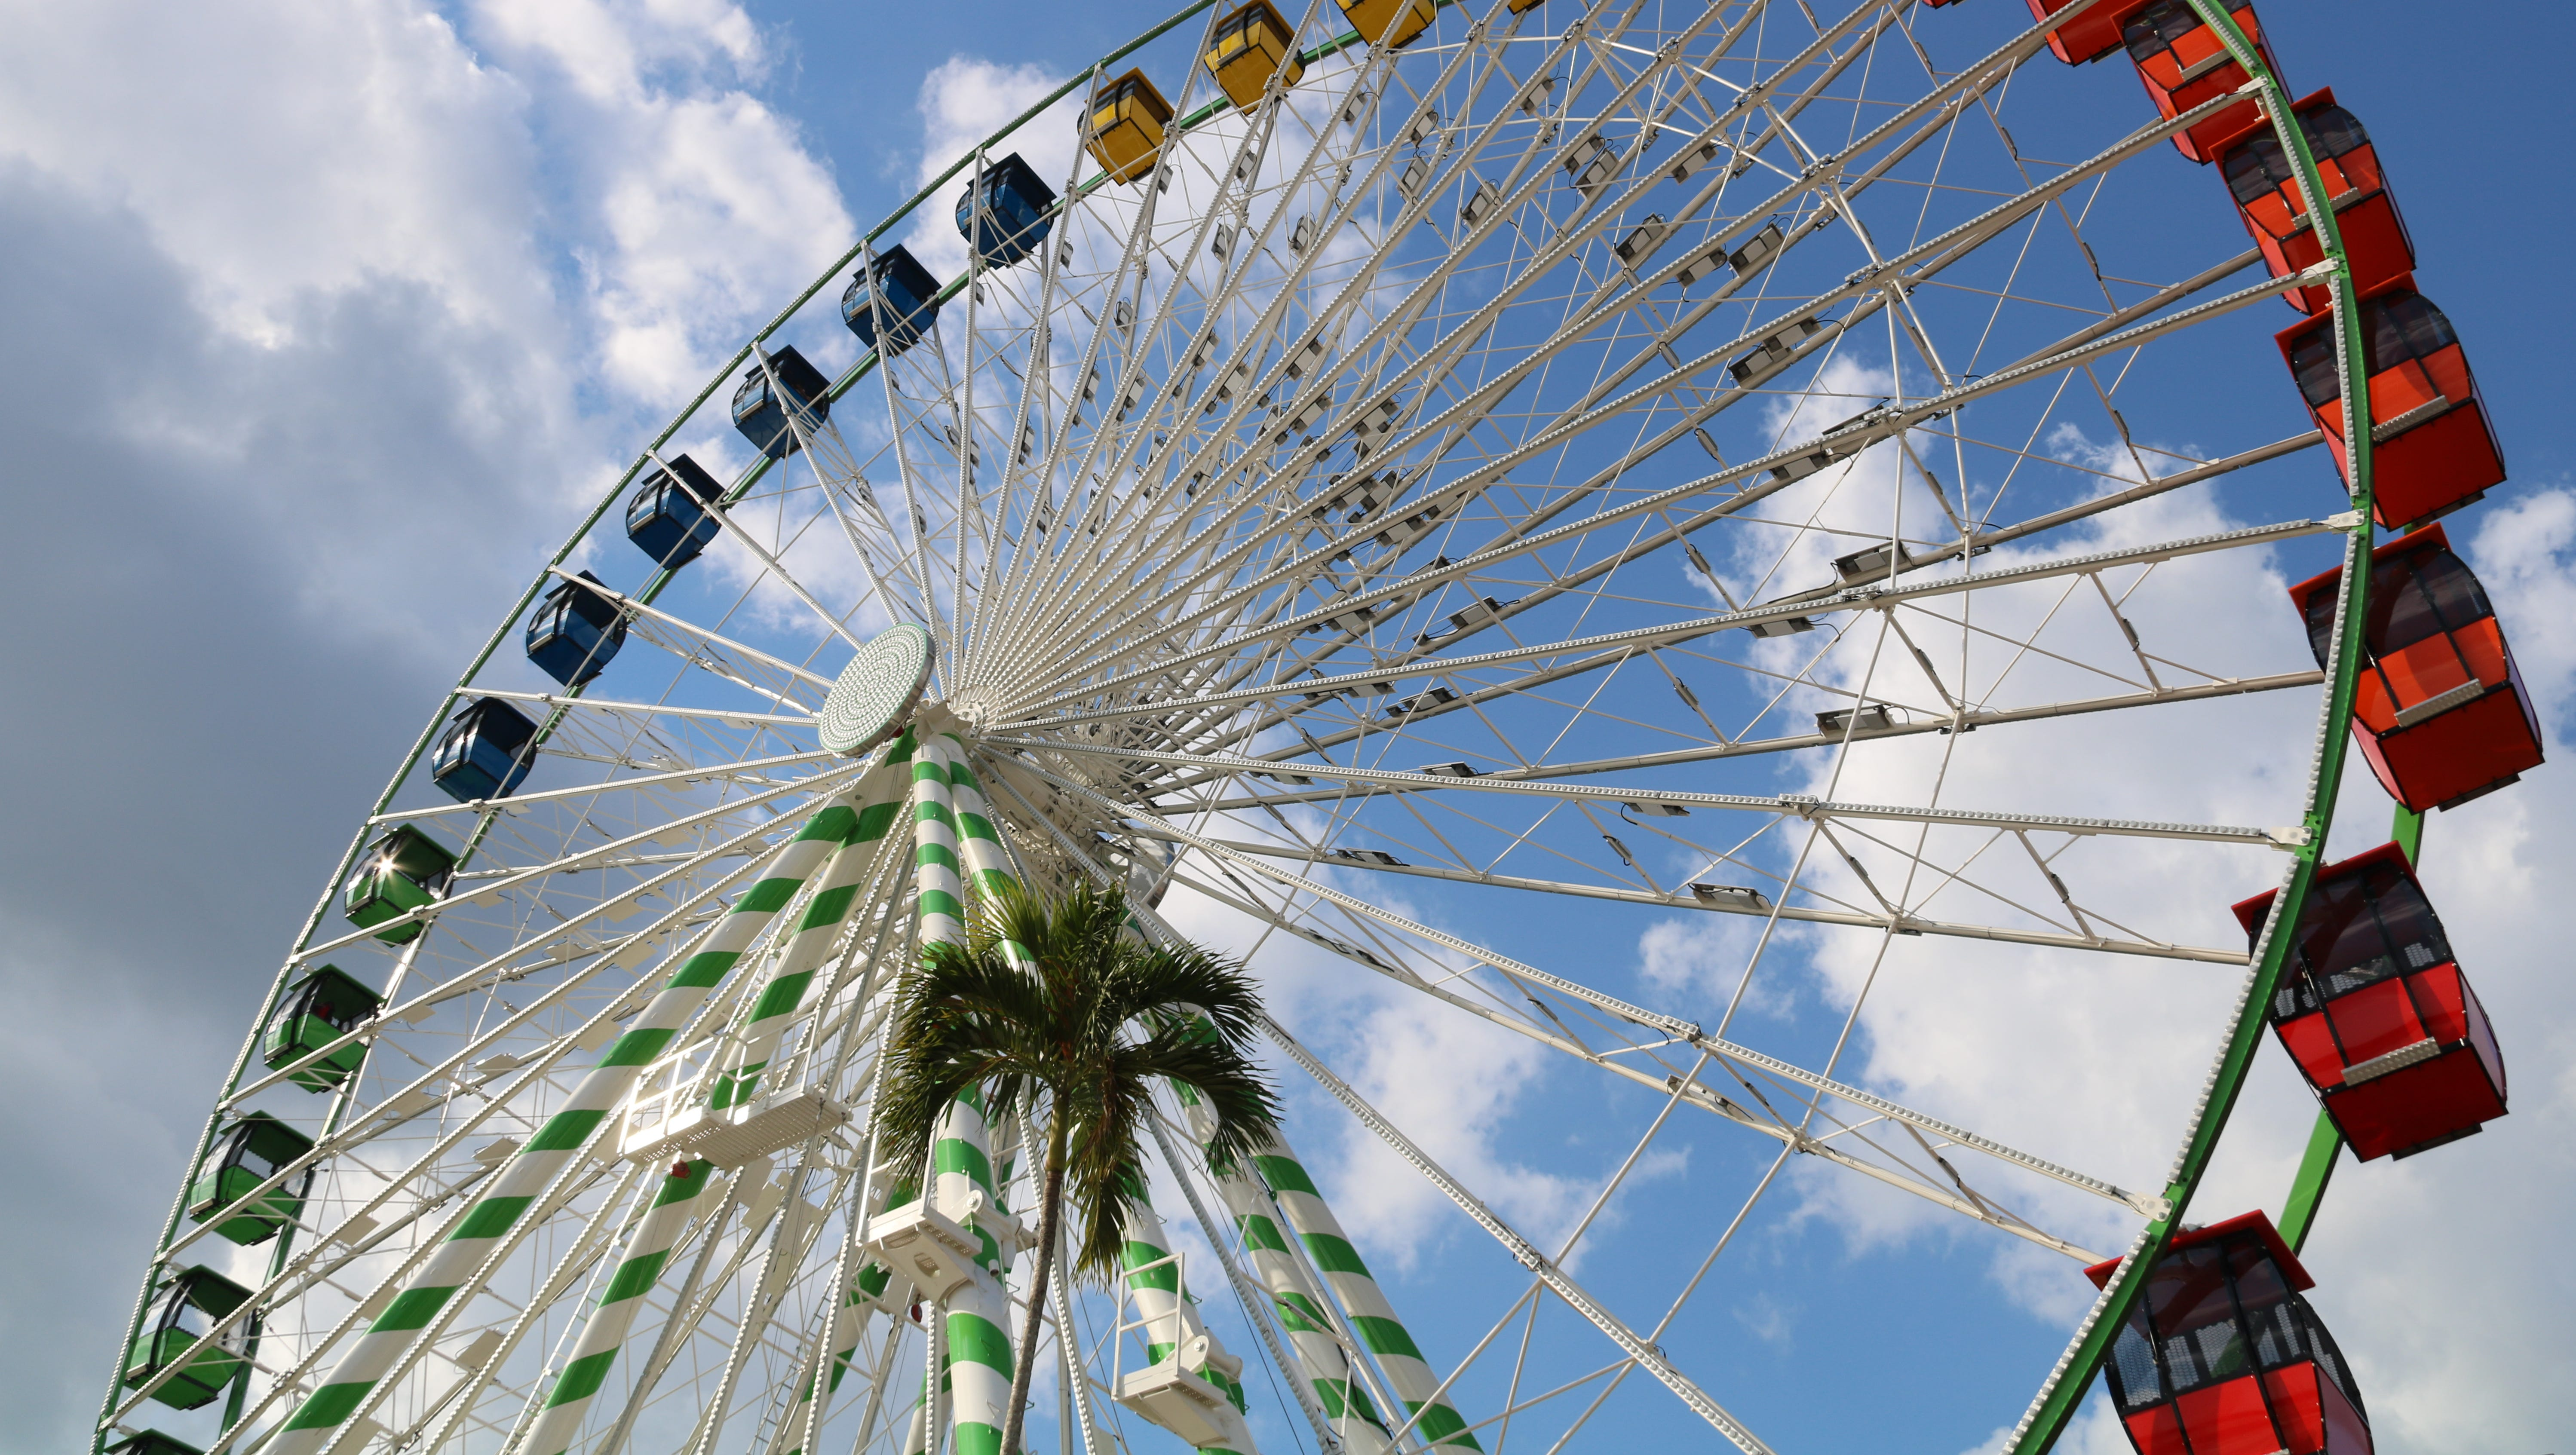 Dog Tricks Wonderwheel Among New Attractions At Wisconsin State Fair